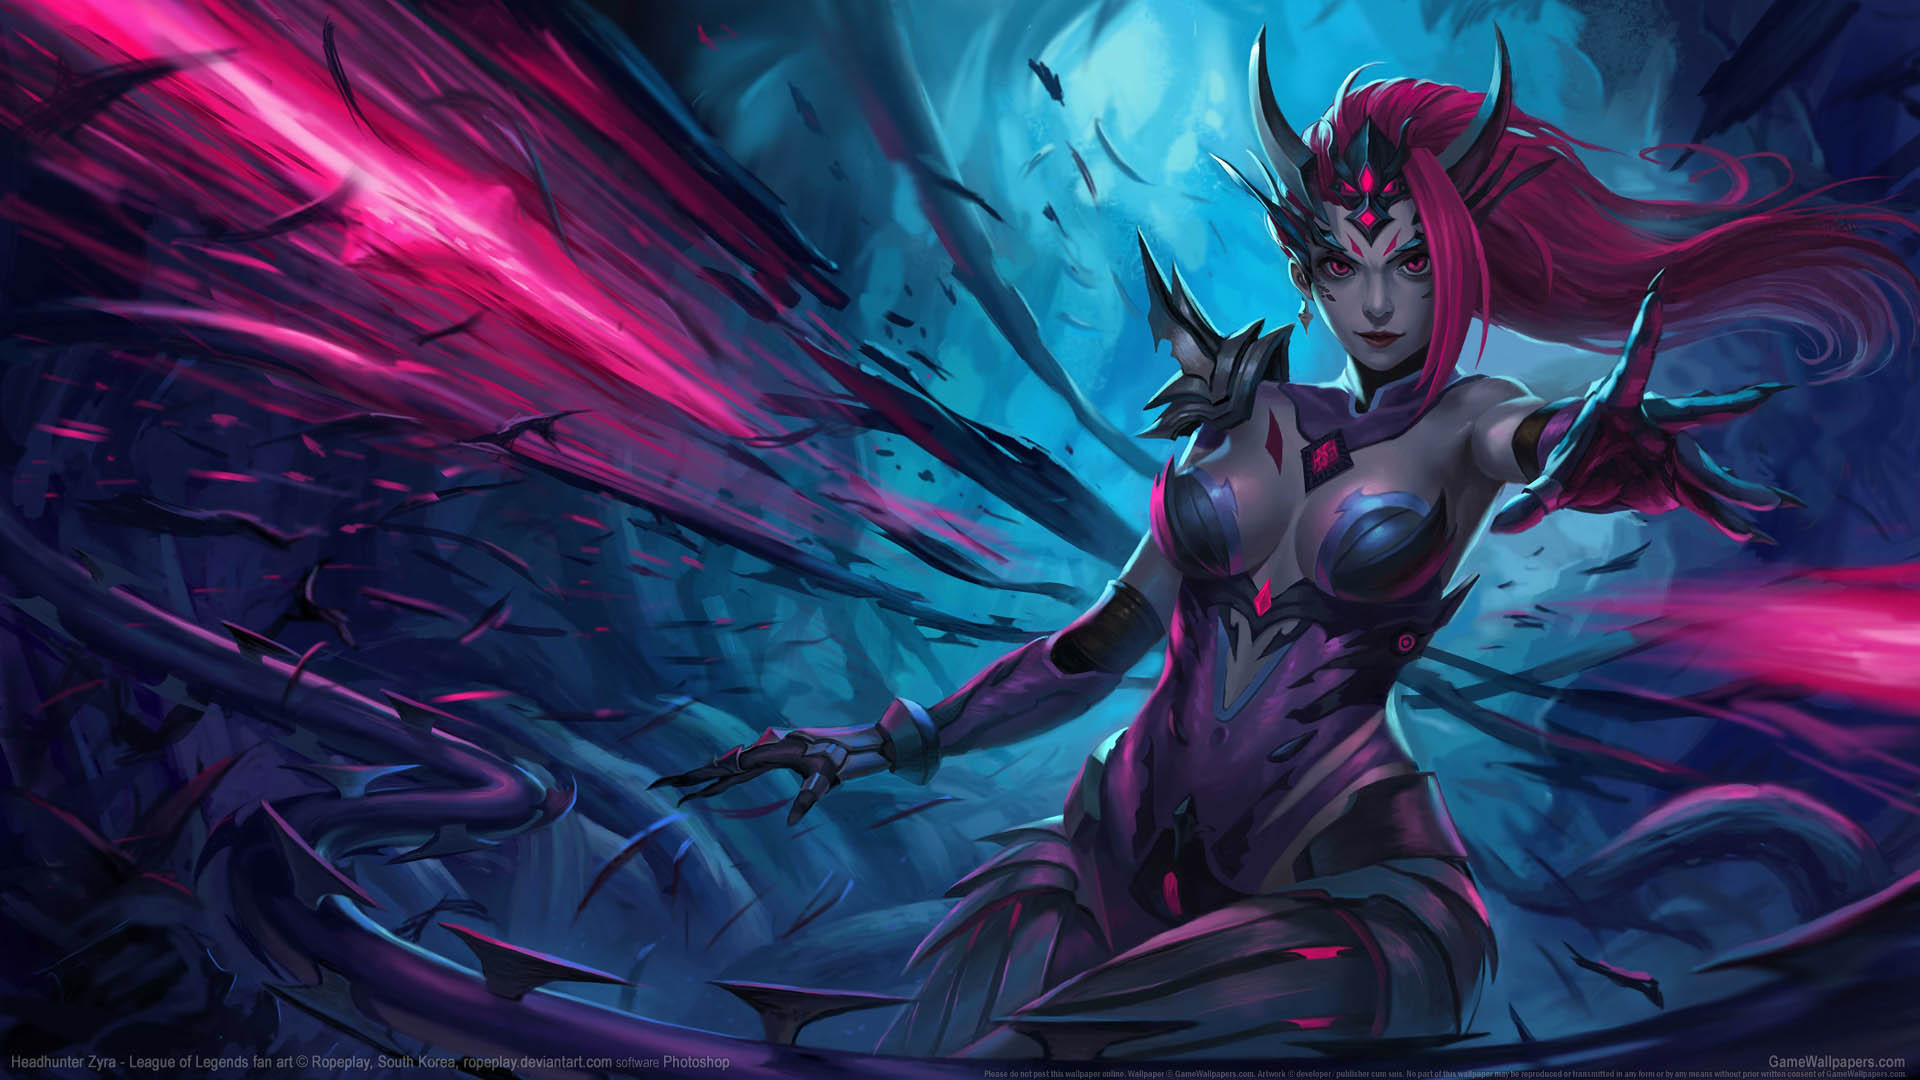 Hd wallpaper tablet - League Of Legends Fan Art Hintergrundbild 01 1920x1080